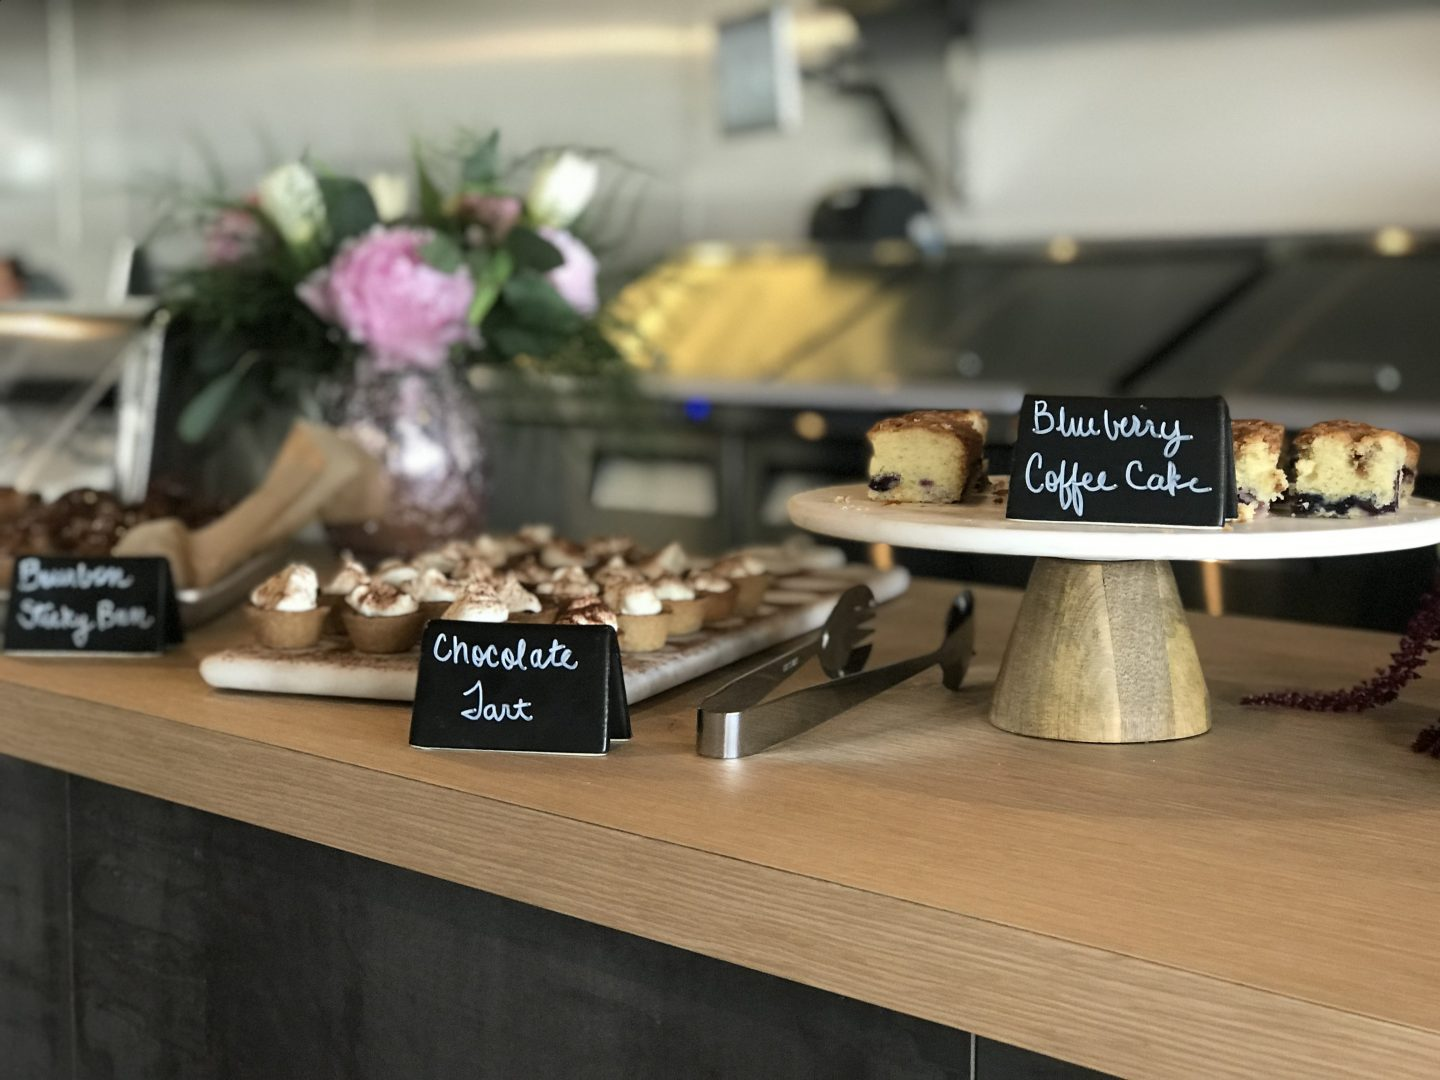 Desserts on a wooden counter